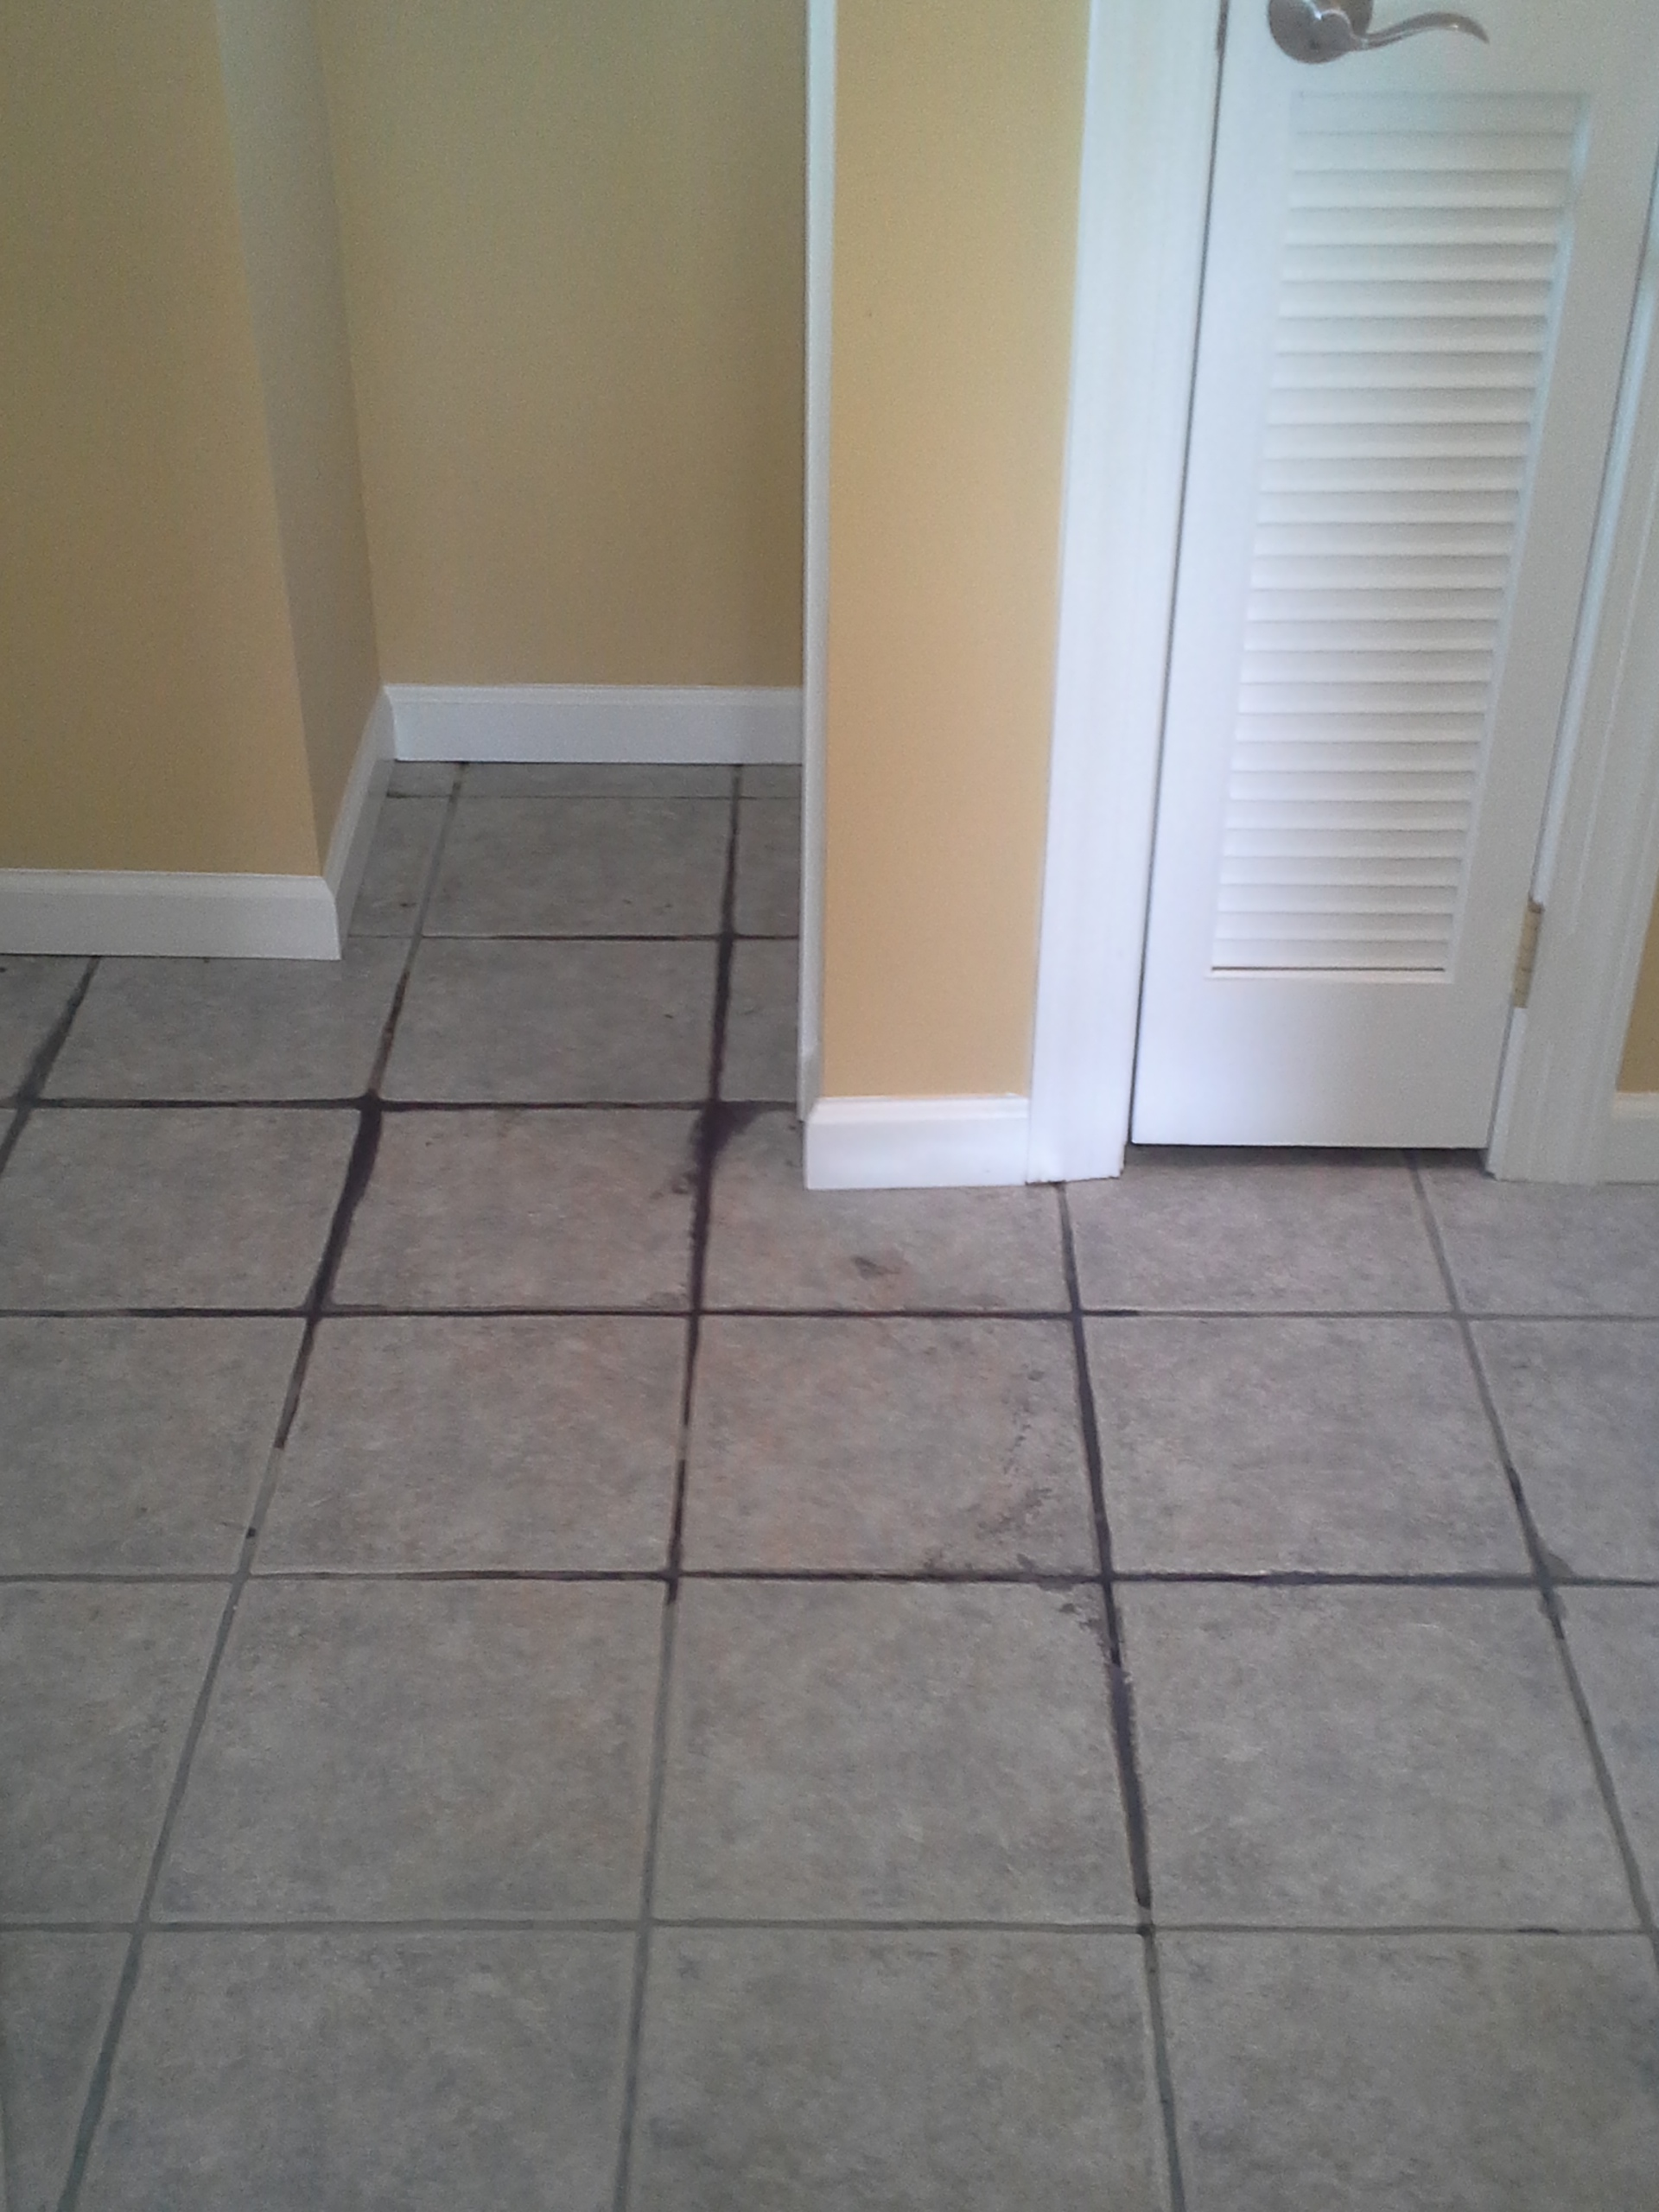 Att NJ Do You Want A Steam Cleaner Carpet Cleaner Or Grout - Does steam clean grout